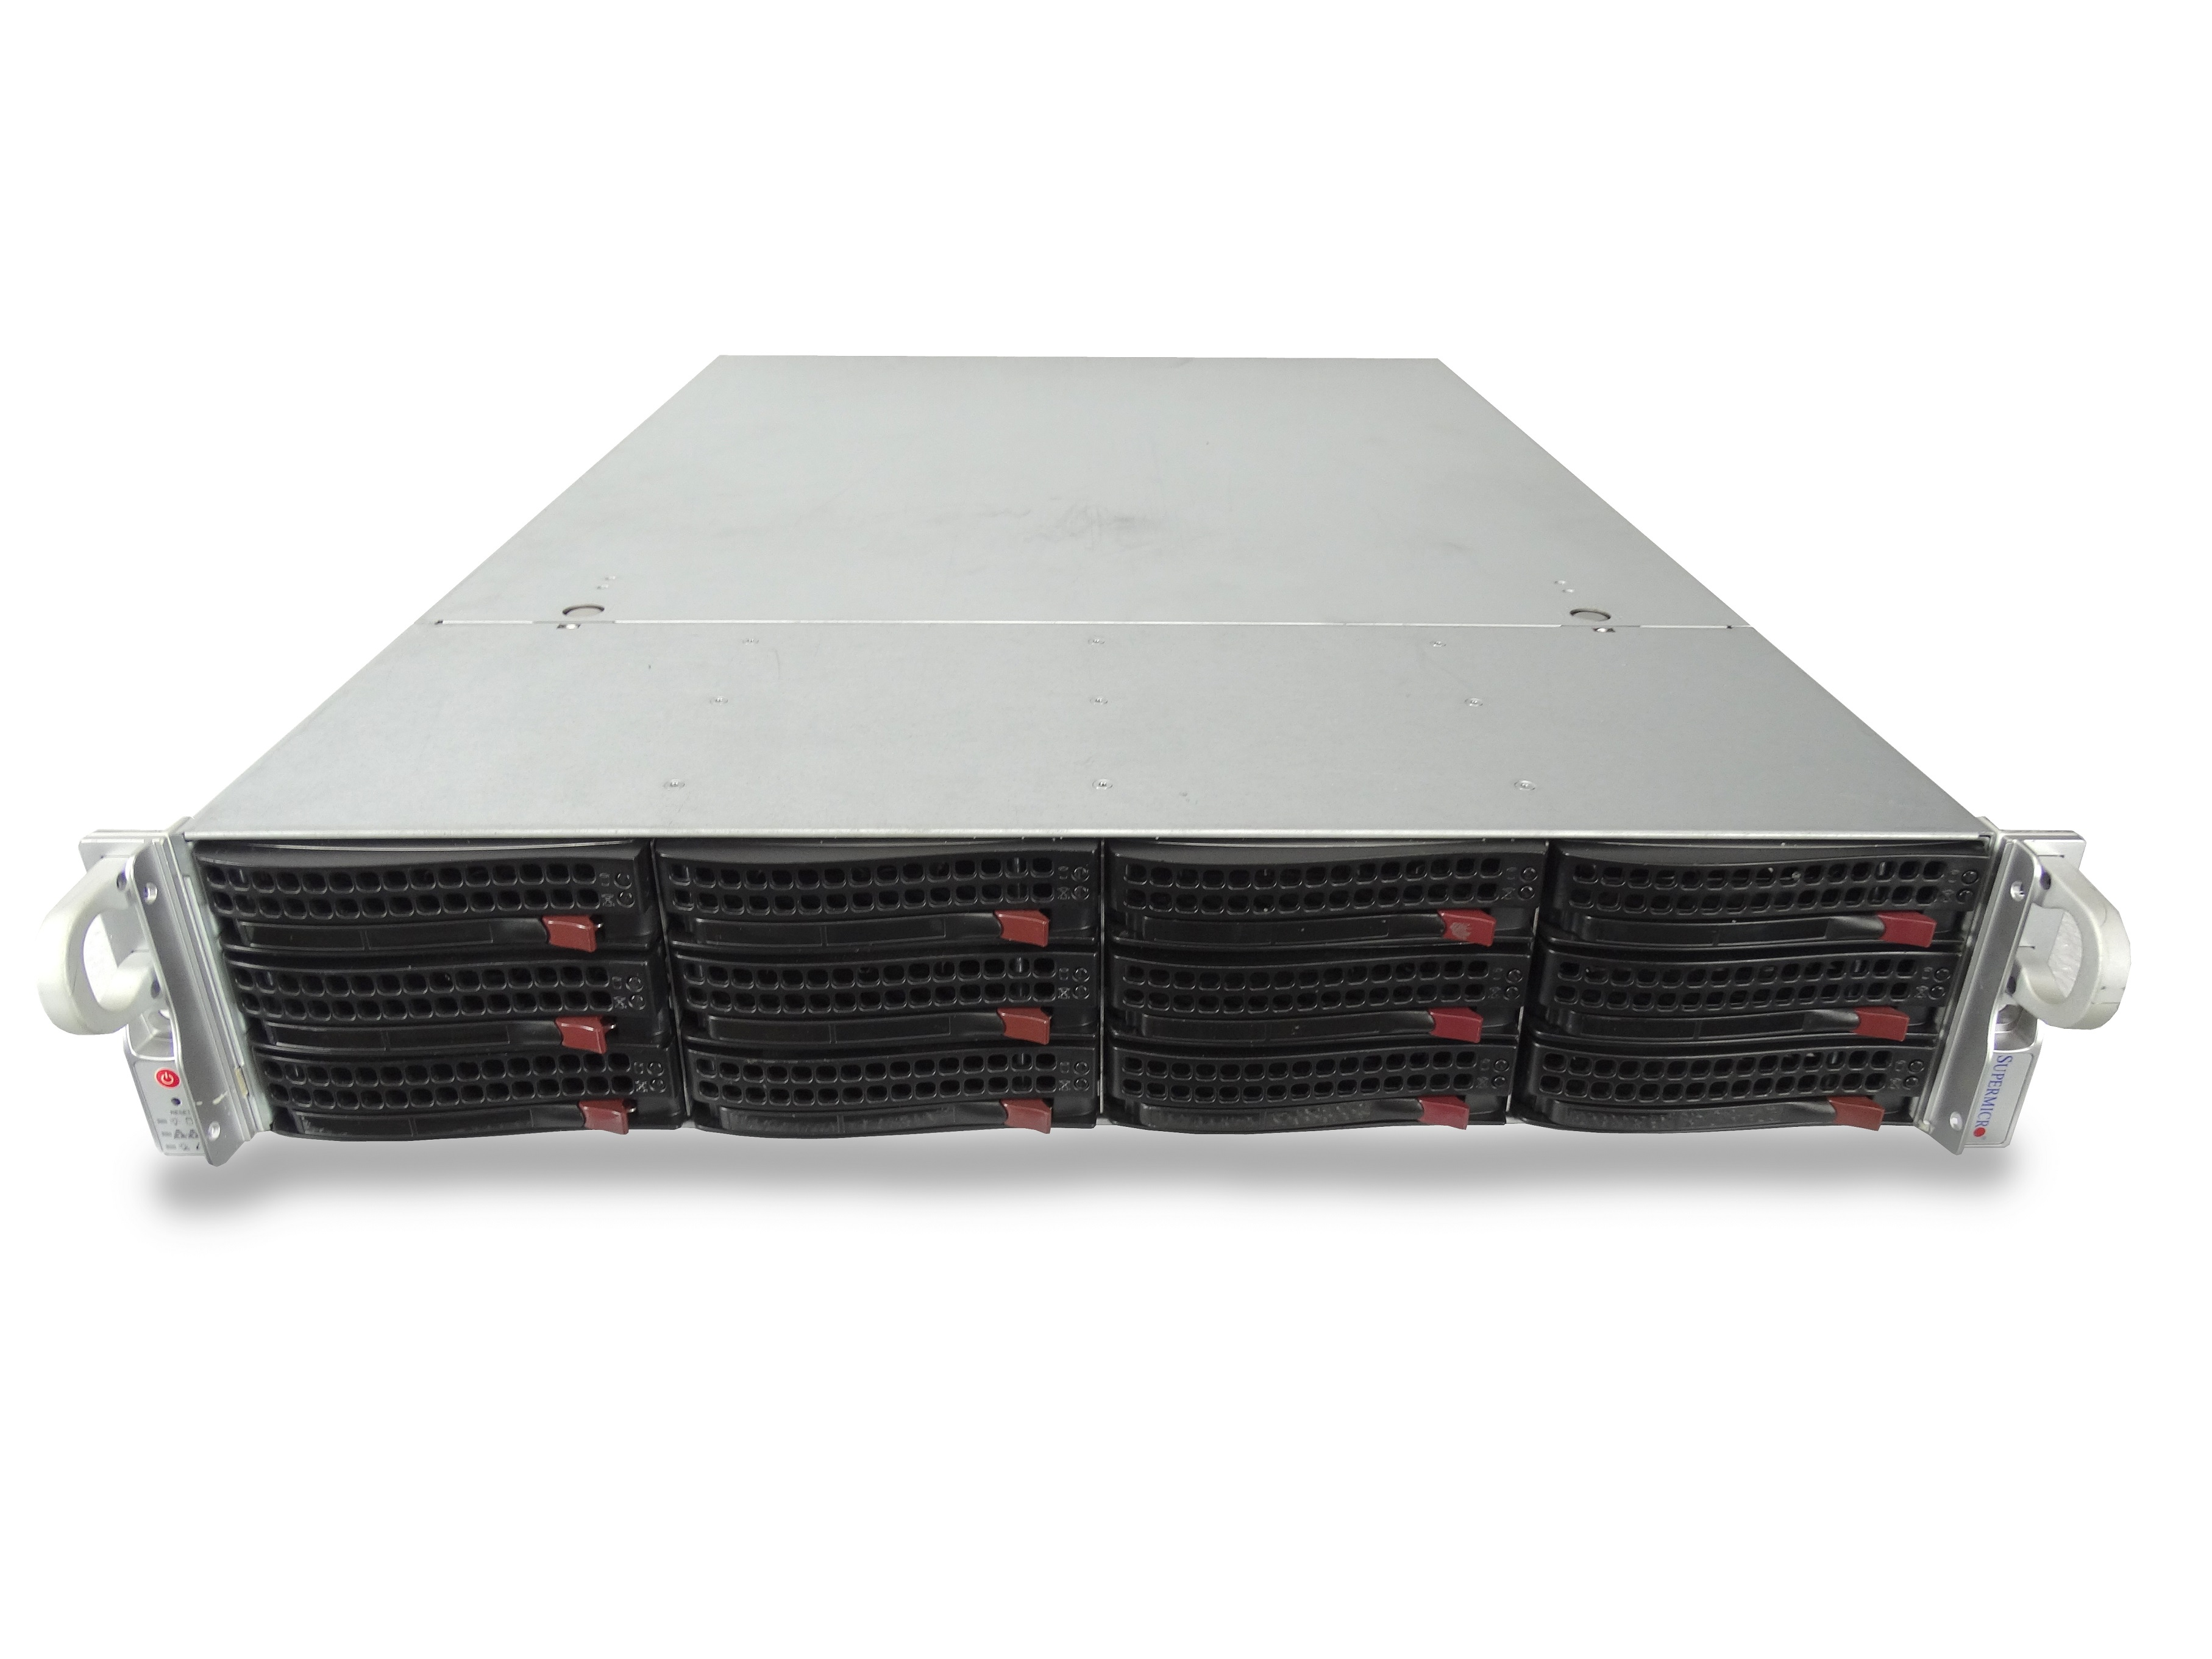 Used & Refurbished Supermicro Servers | MET Servers